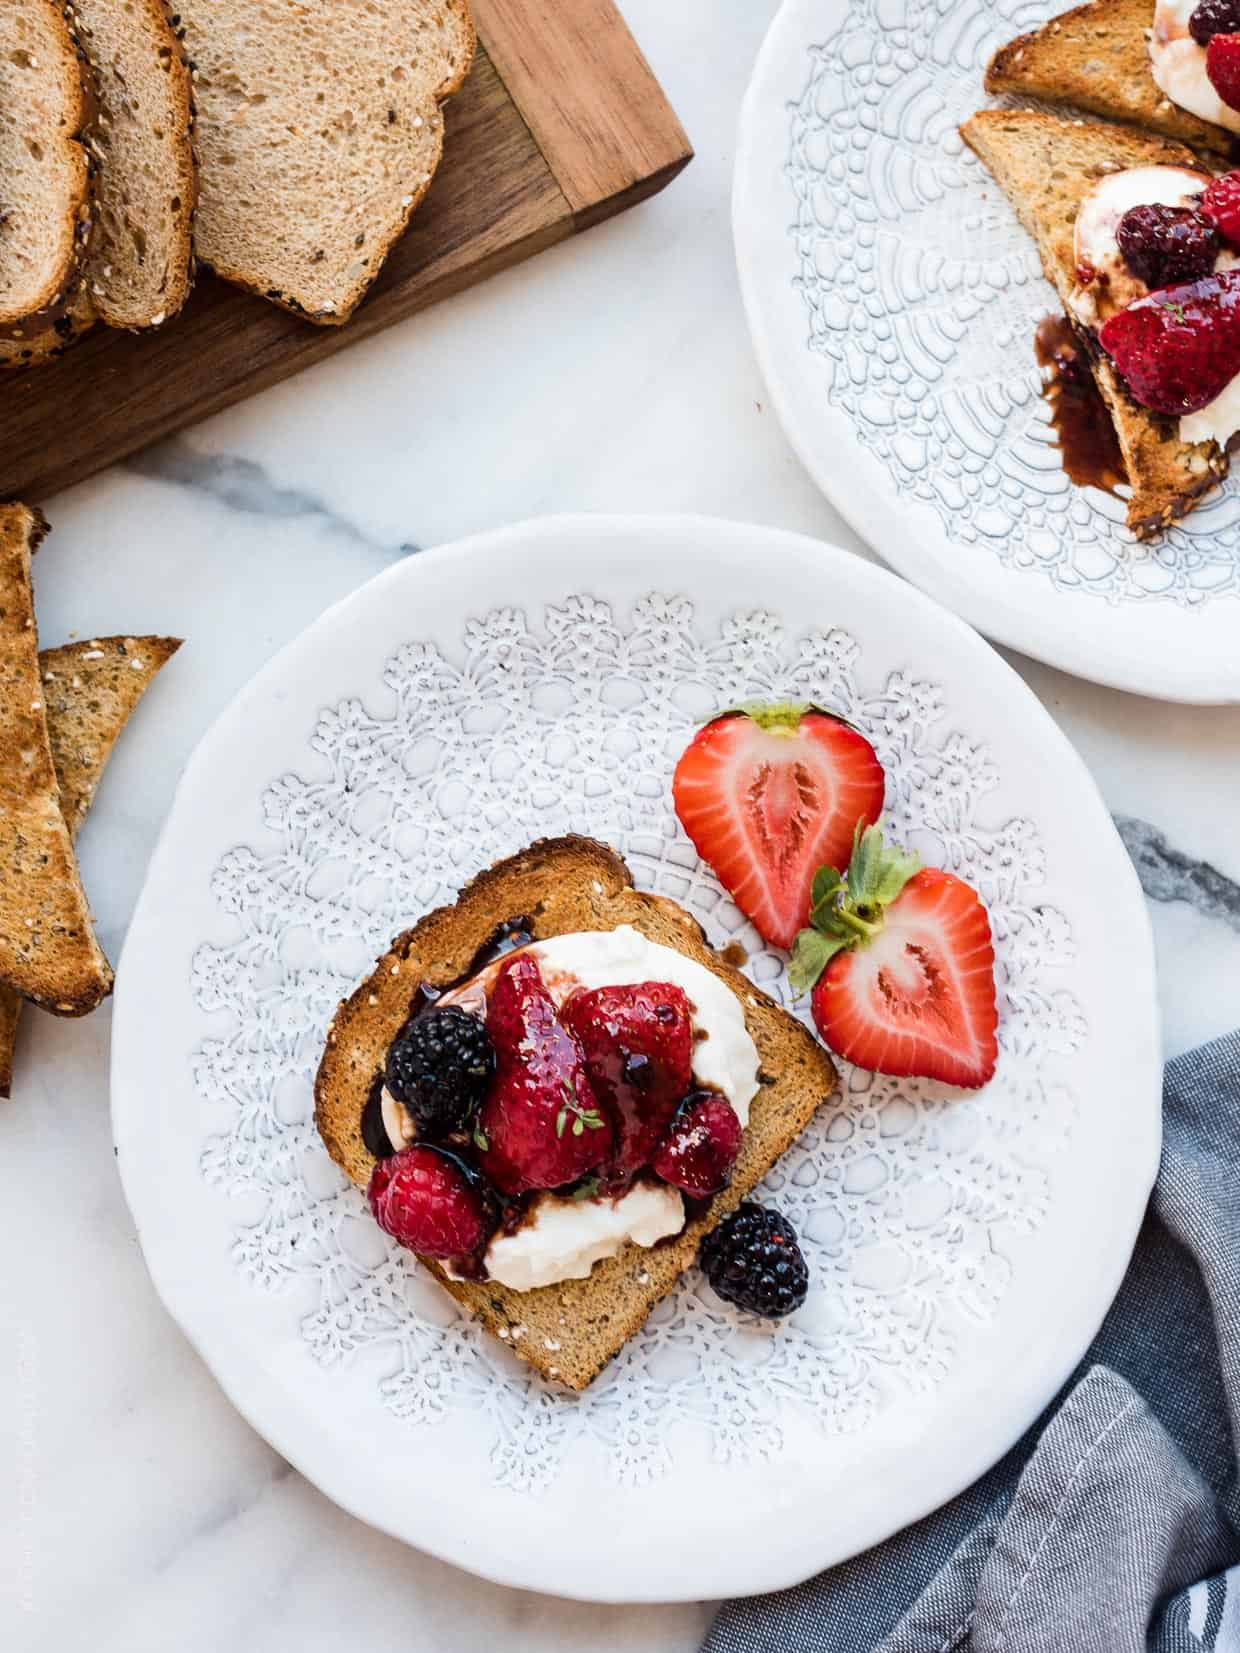 Burrata Toast with Balsamic Berries on a white plate.